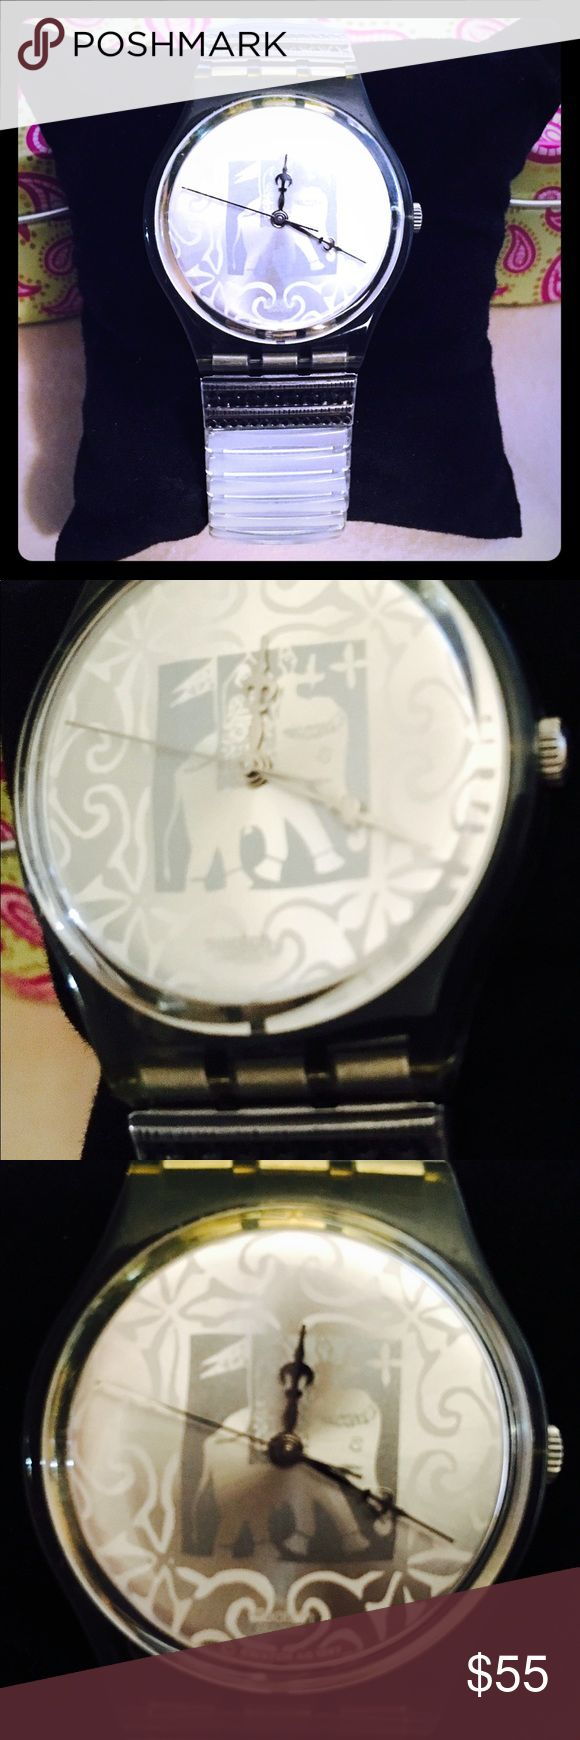 Vintage Authentic Swatch Watch sale! Reasonable offers accepted! (Vintage Authentic Swatch Watch sale!) Swatch Other